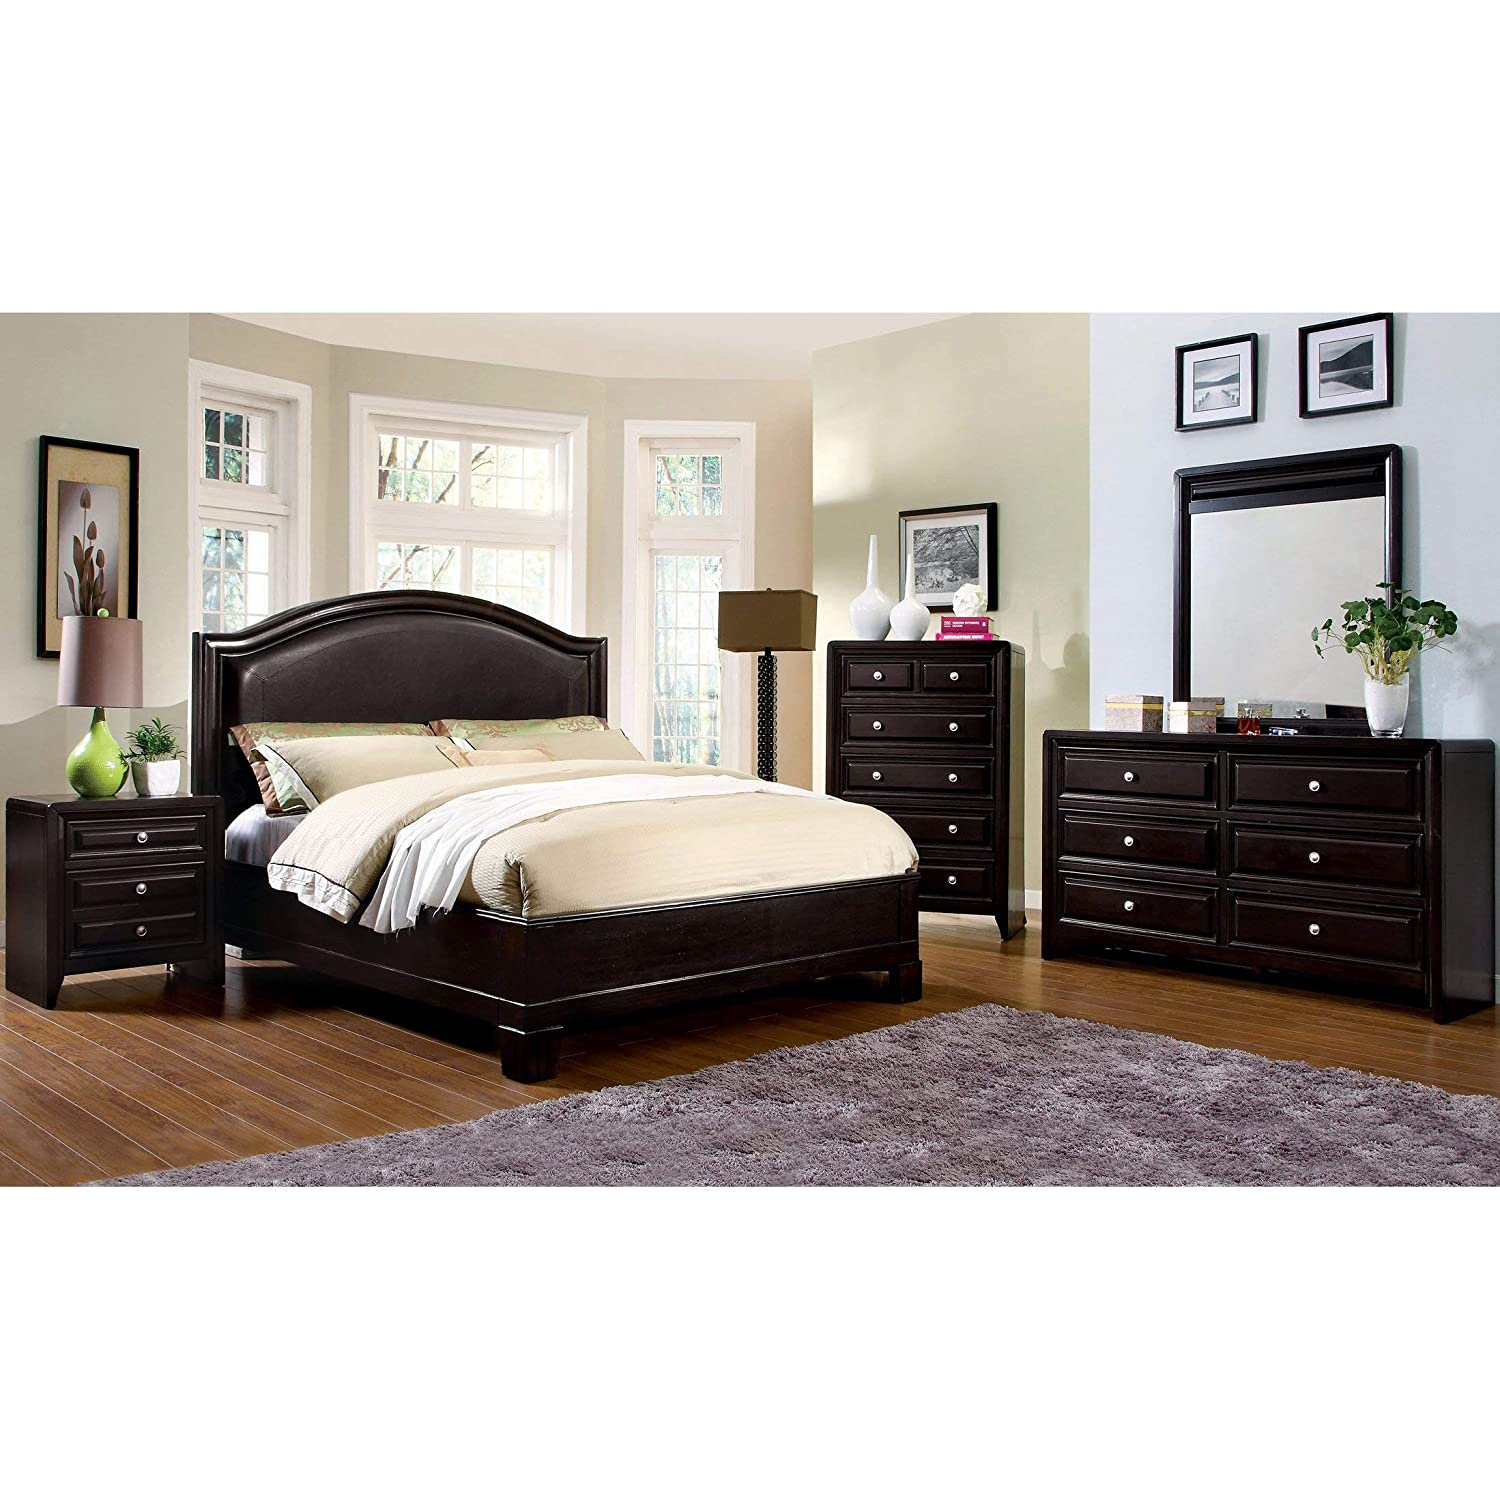 Amazon Com Furniture Of America 4 Piece Transitional Style Bedroom